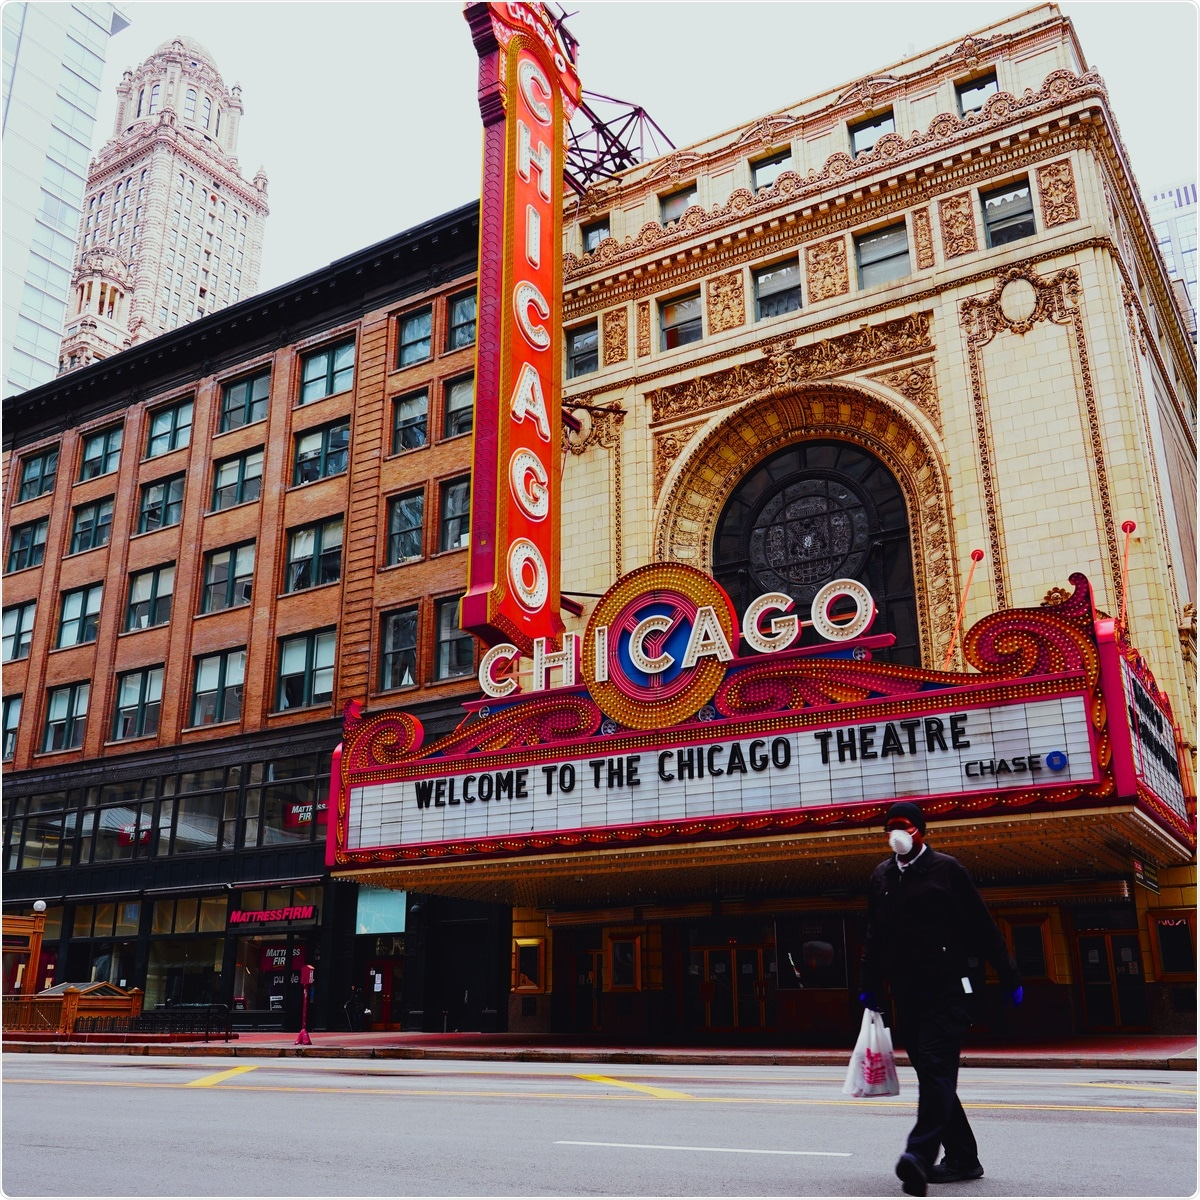 Chicago - April 4, 2020: Chicago theater building with a man wearing a mask walking by during the coronavirus pandemic. Image Credit: iwonder TV / Shutterstock.